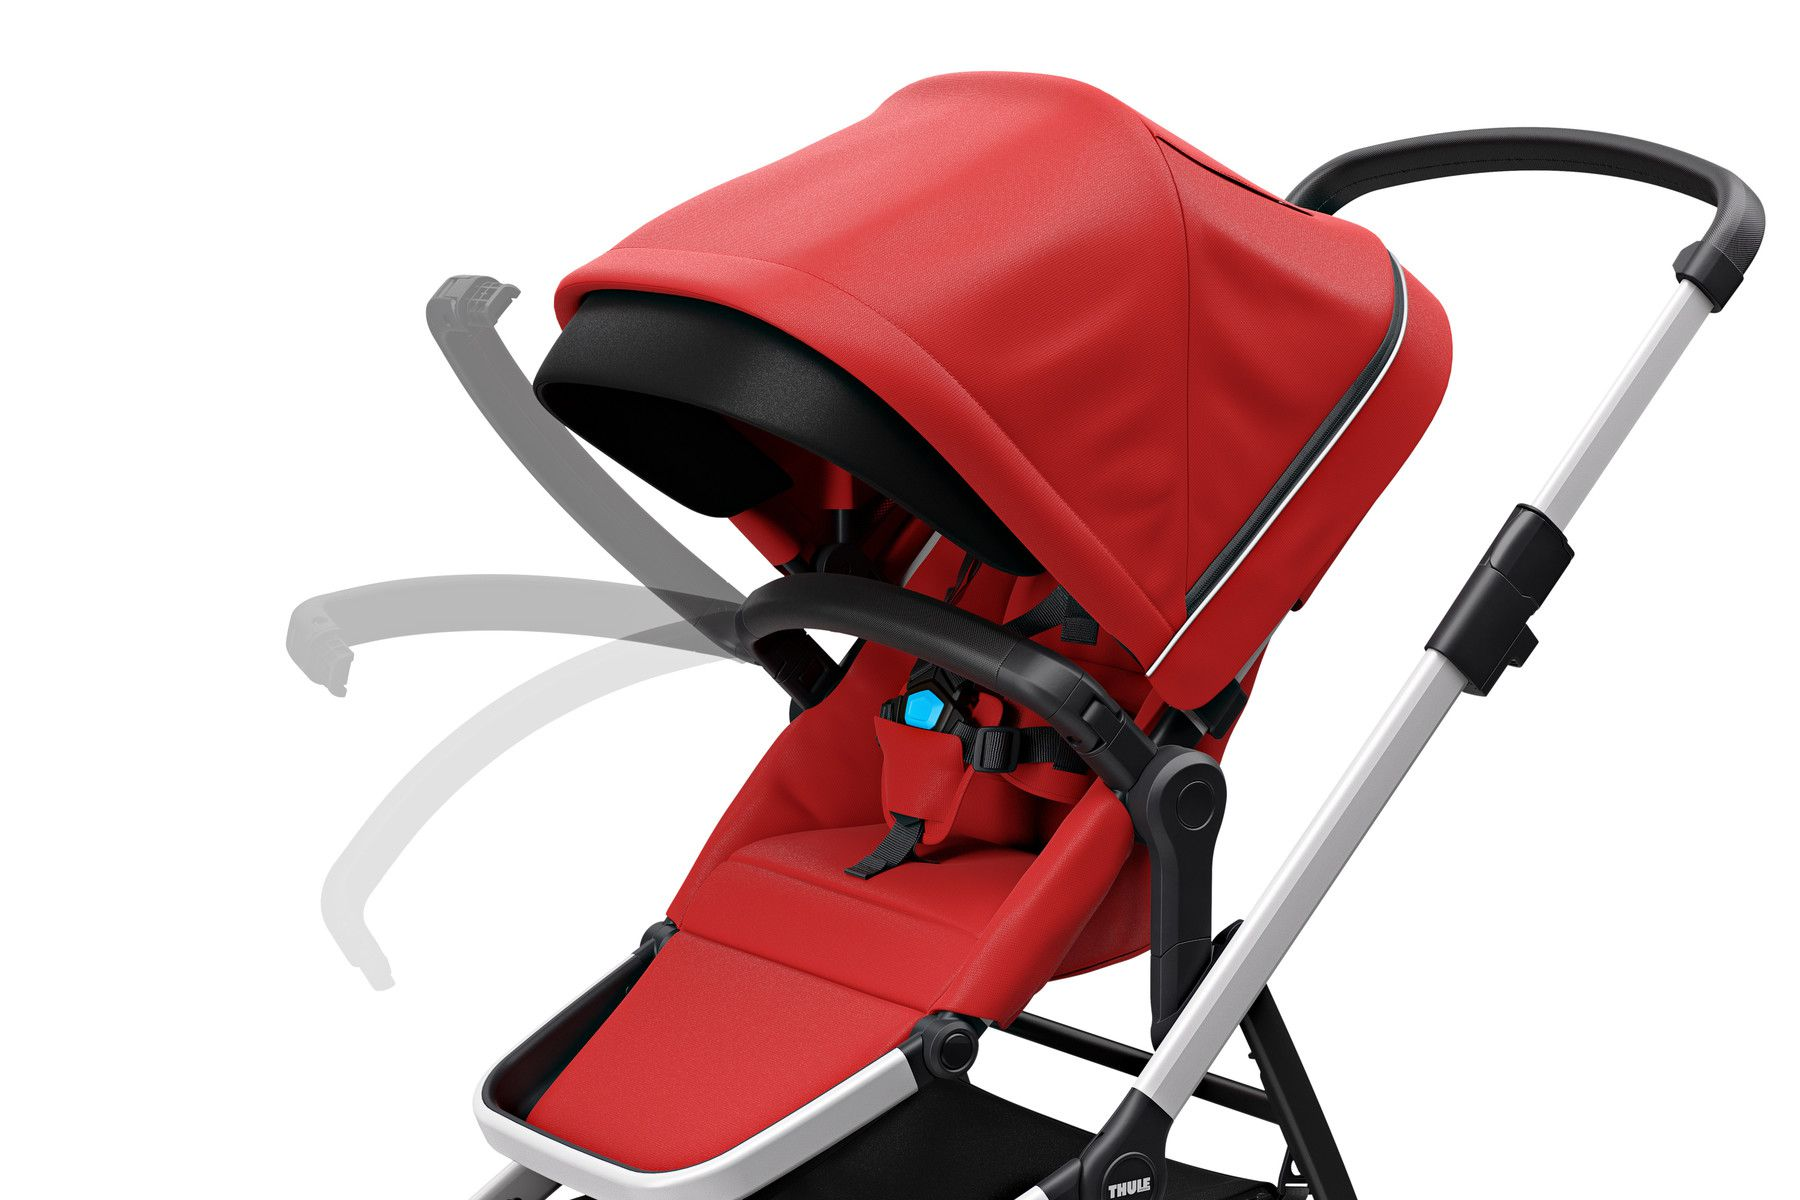 CARRINHO SLEEK  COM MOISÉS/ BASSINET - ENERGY RED - THULE